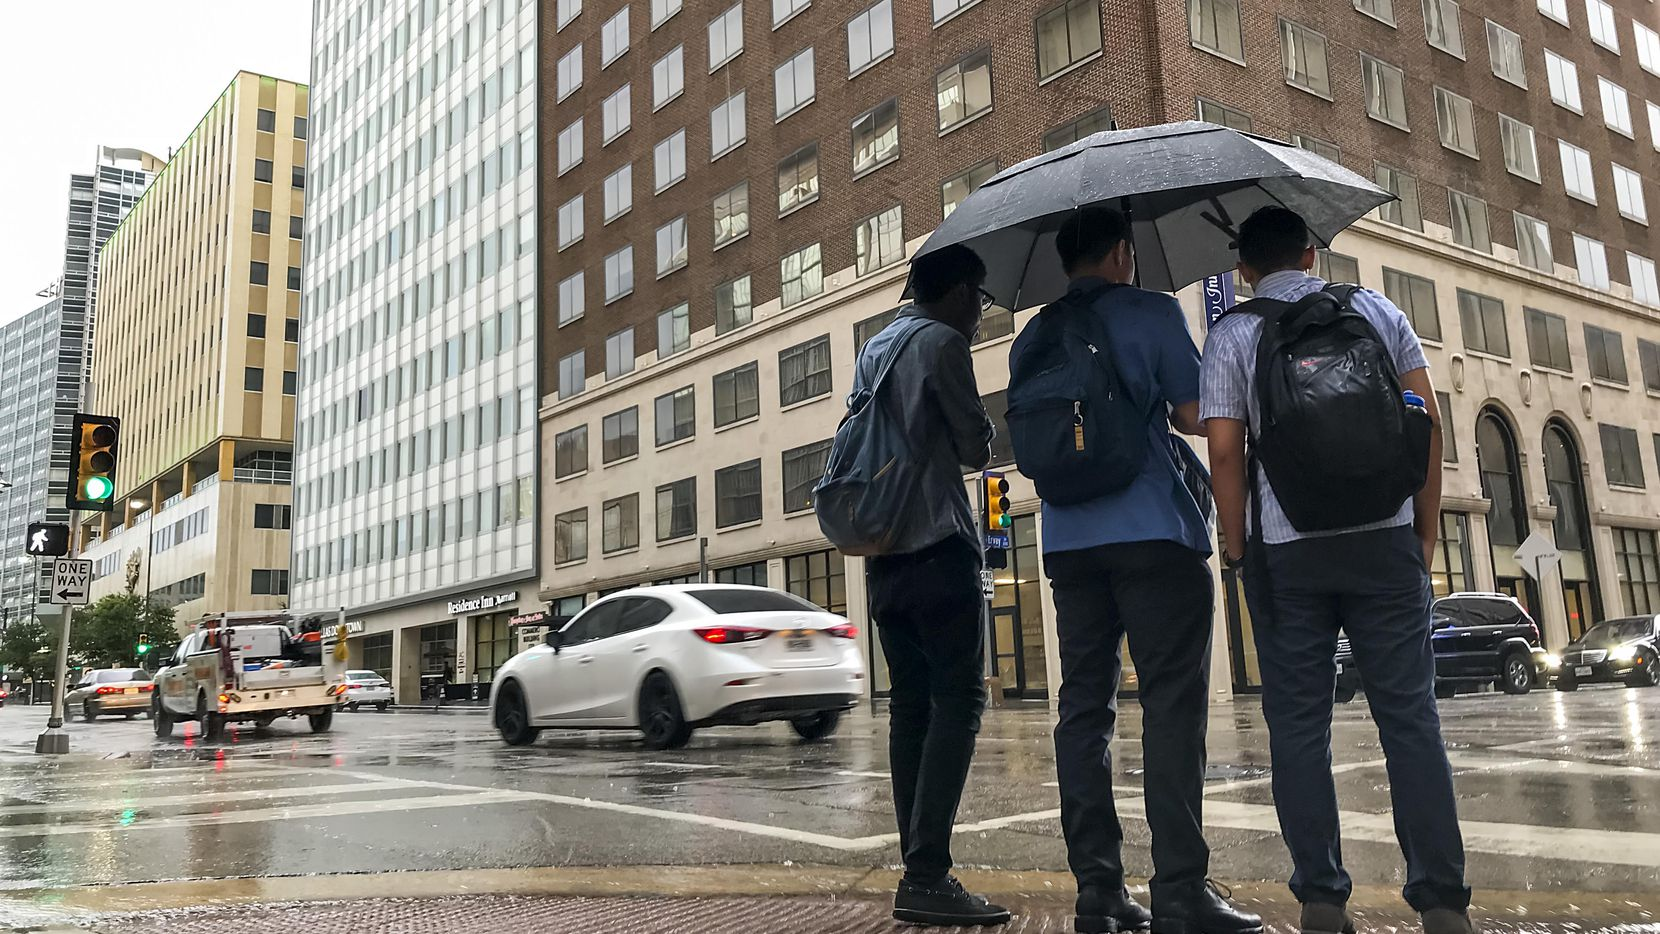 Pedestrians take cover from the rain as a thunderstorm rolls through downtown Dallas. in 2018.